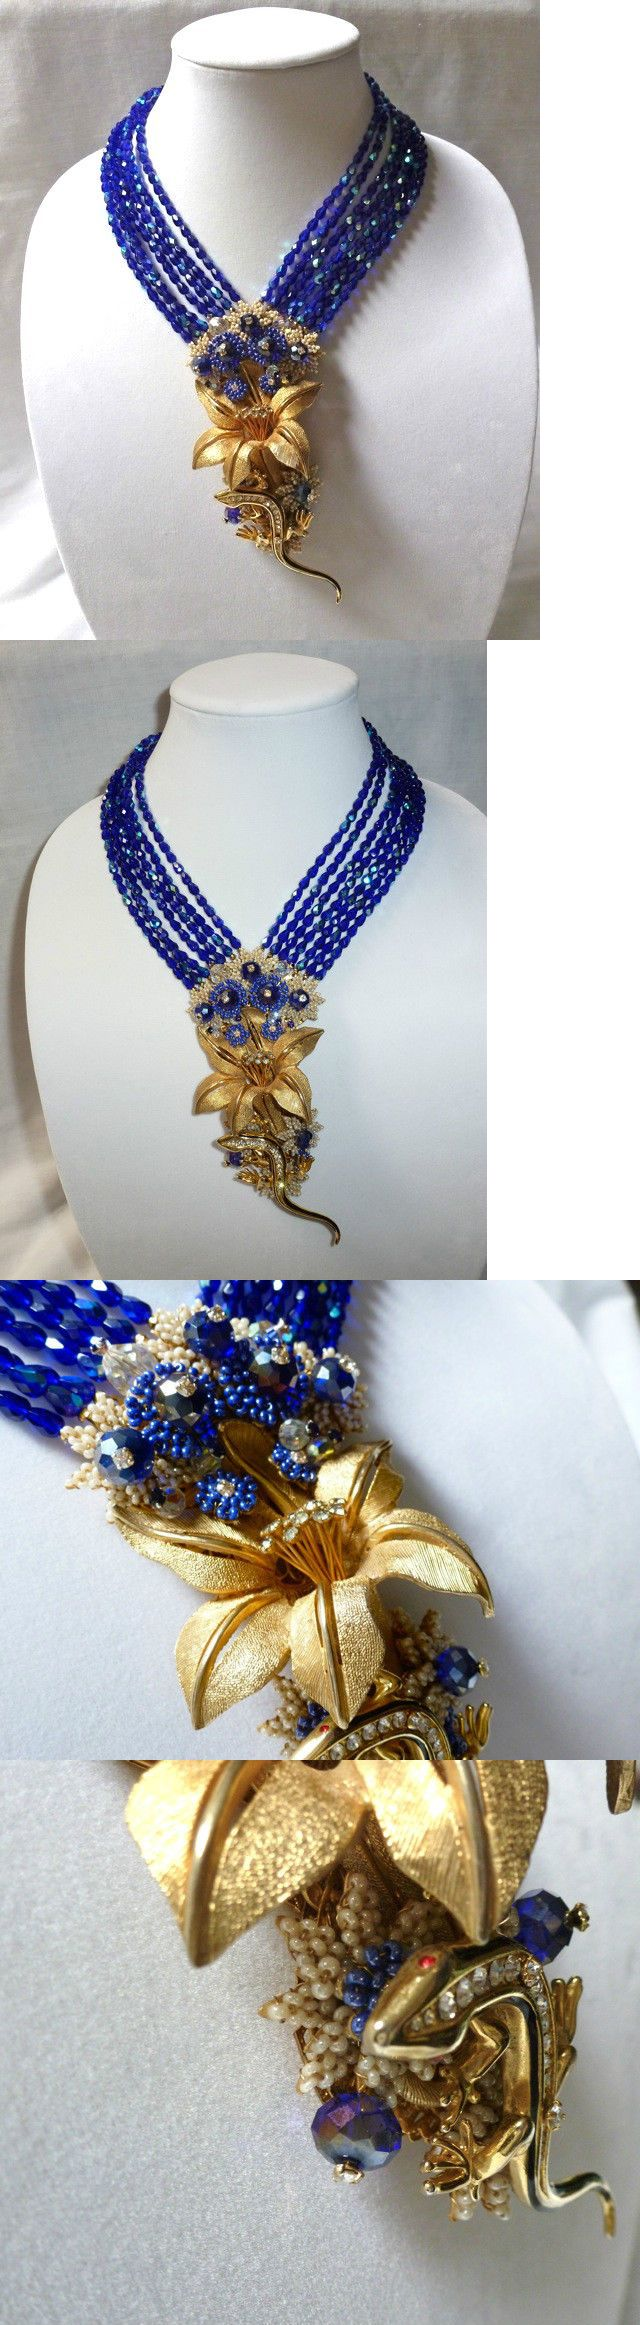 Necklaces and Pendants 165893: Huge Stanley Hagler Lily Flower And Lizard Pendant 7 Strand Necklace - 5.75 Drop BUY IT NOW ONLY: $629.99